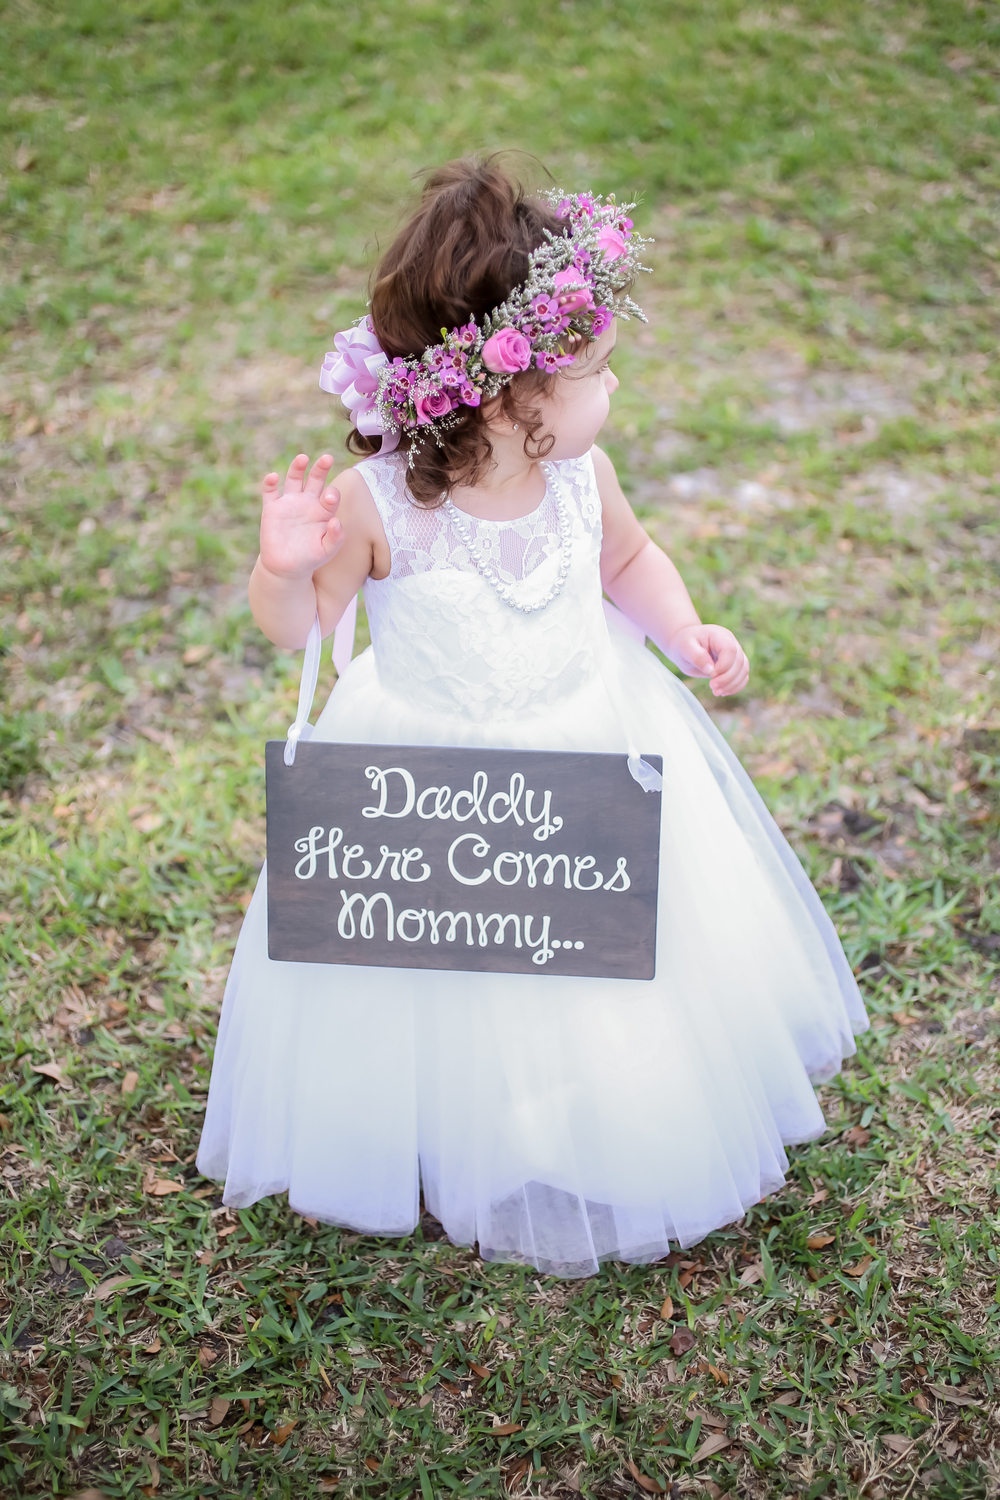 How adorable is this flower girl and her sign and floral crown?